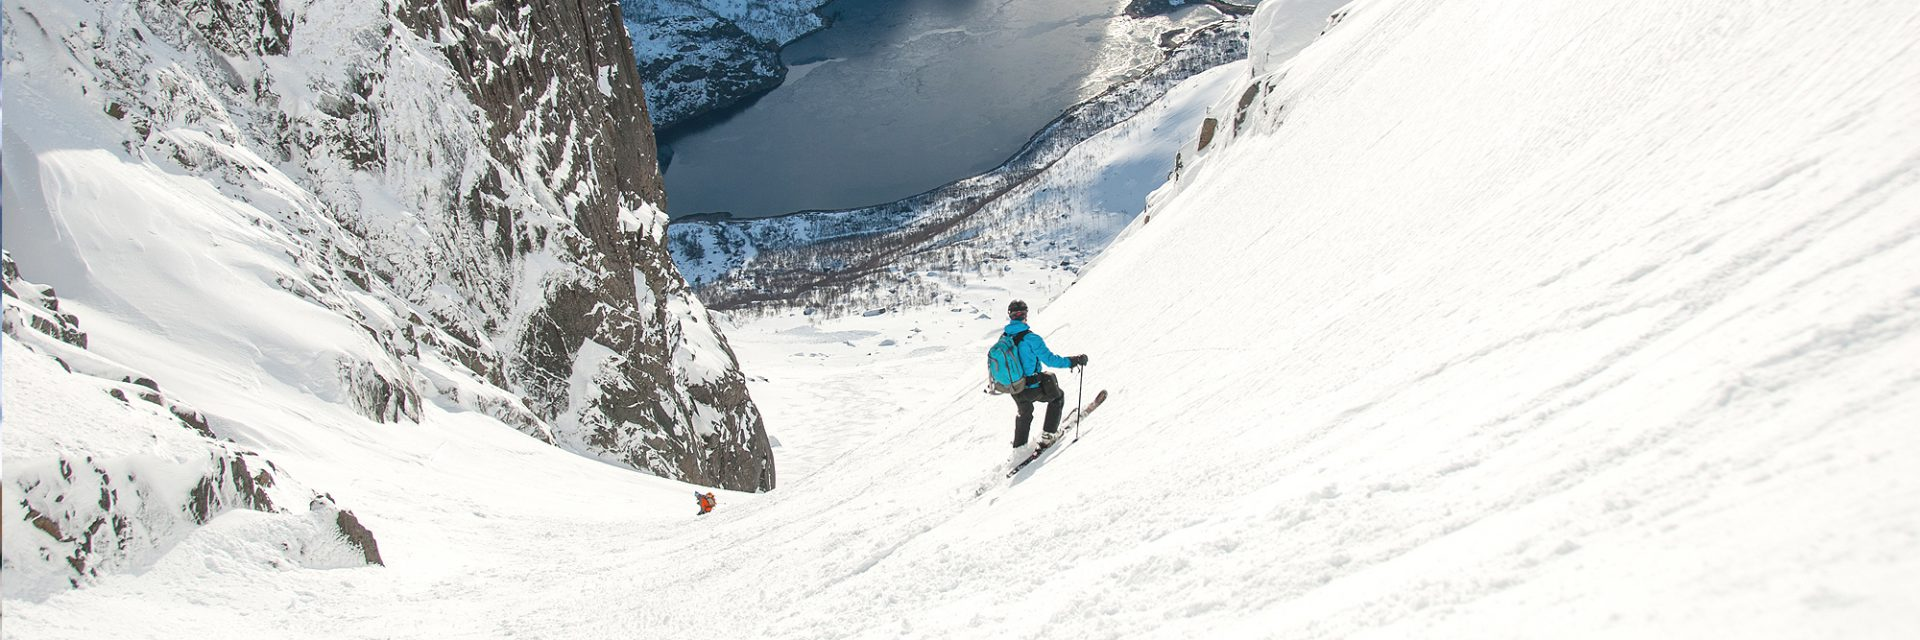 backcountry ski holidays in europe with alpine guides